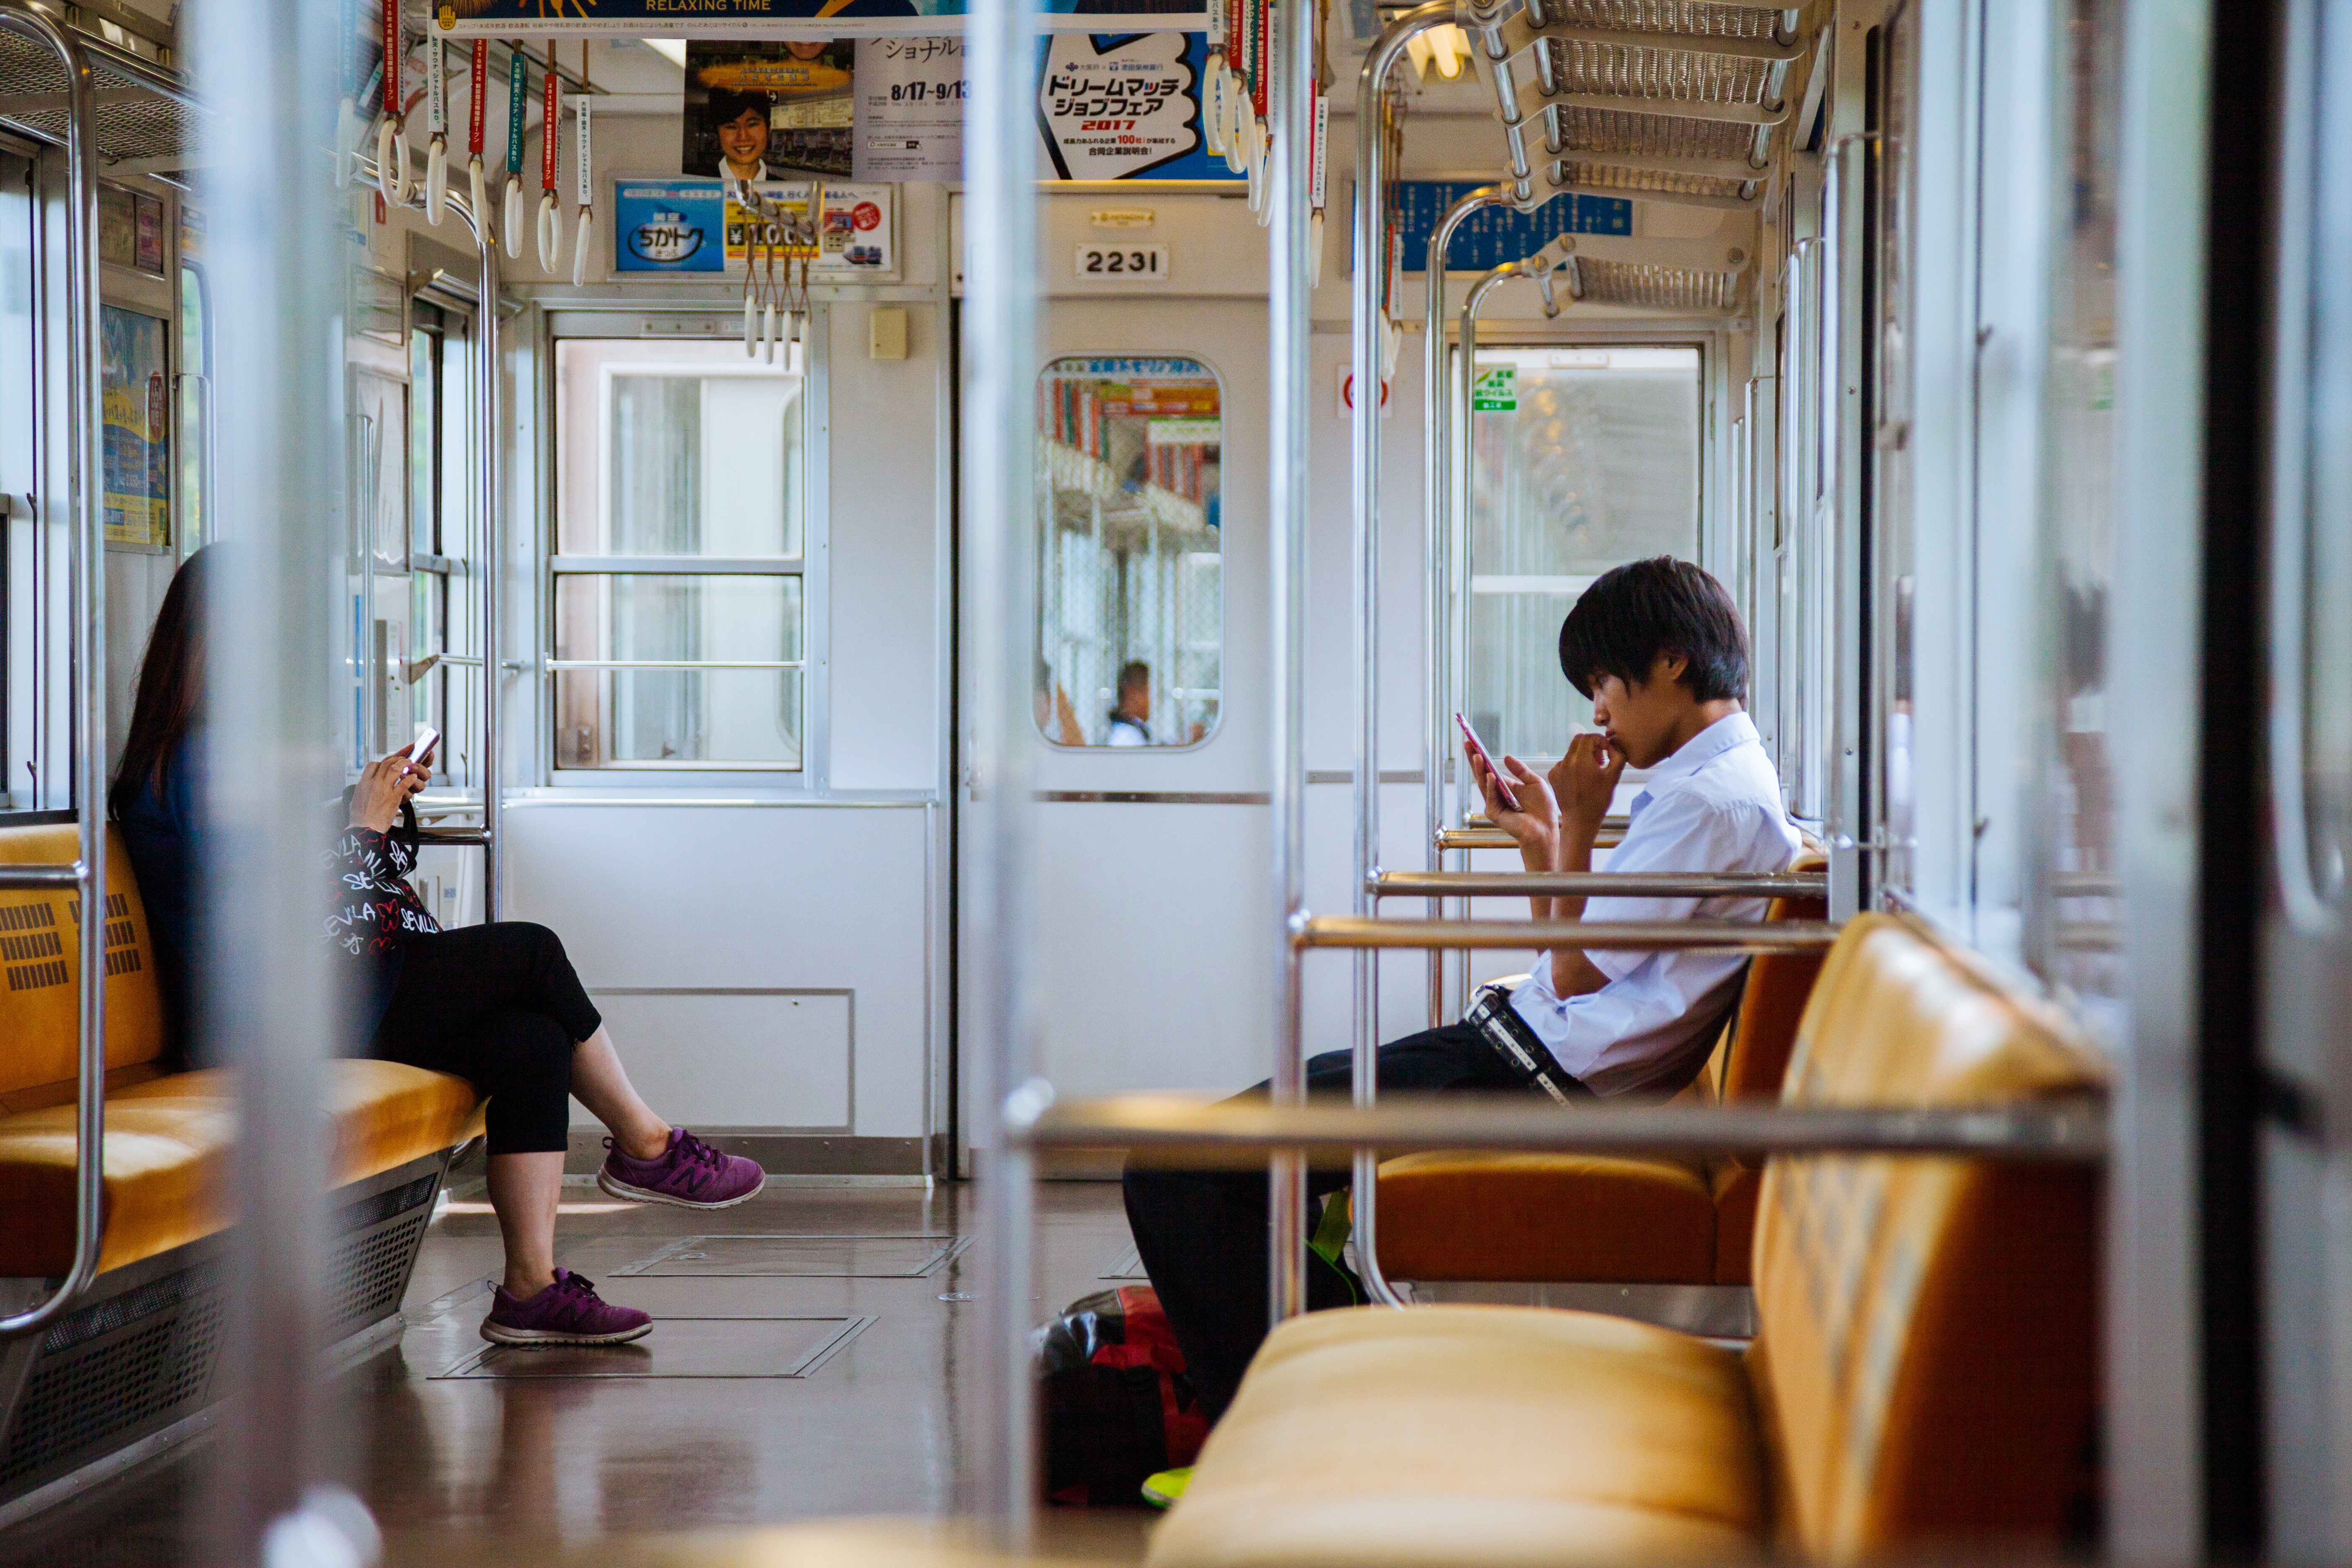 Two people in an urban train in Nara, Japan